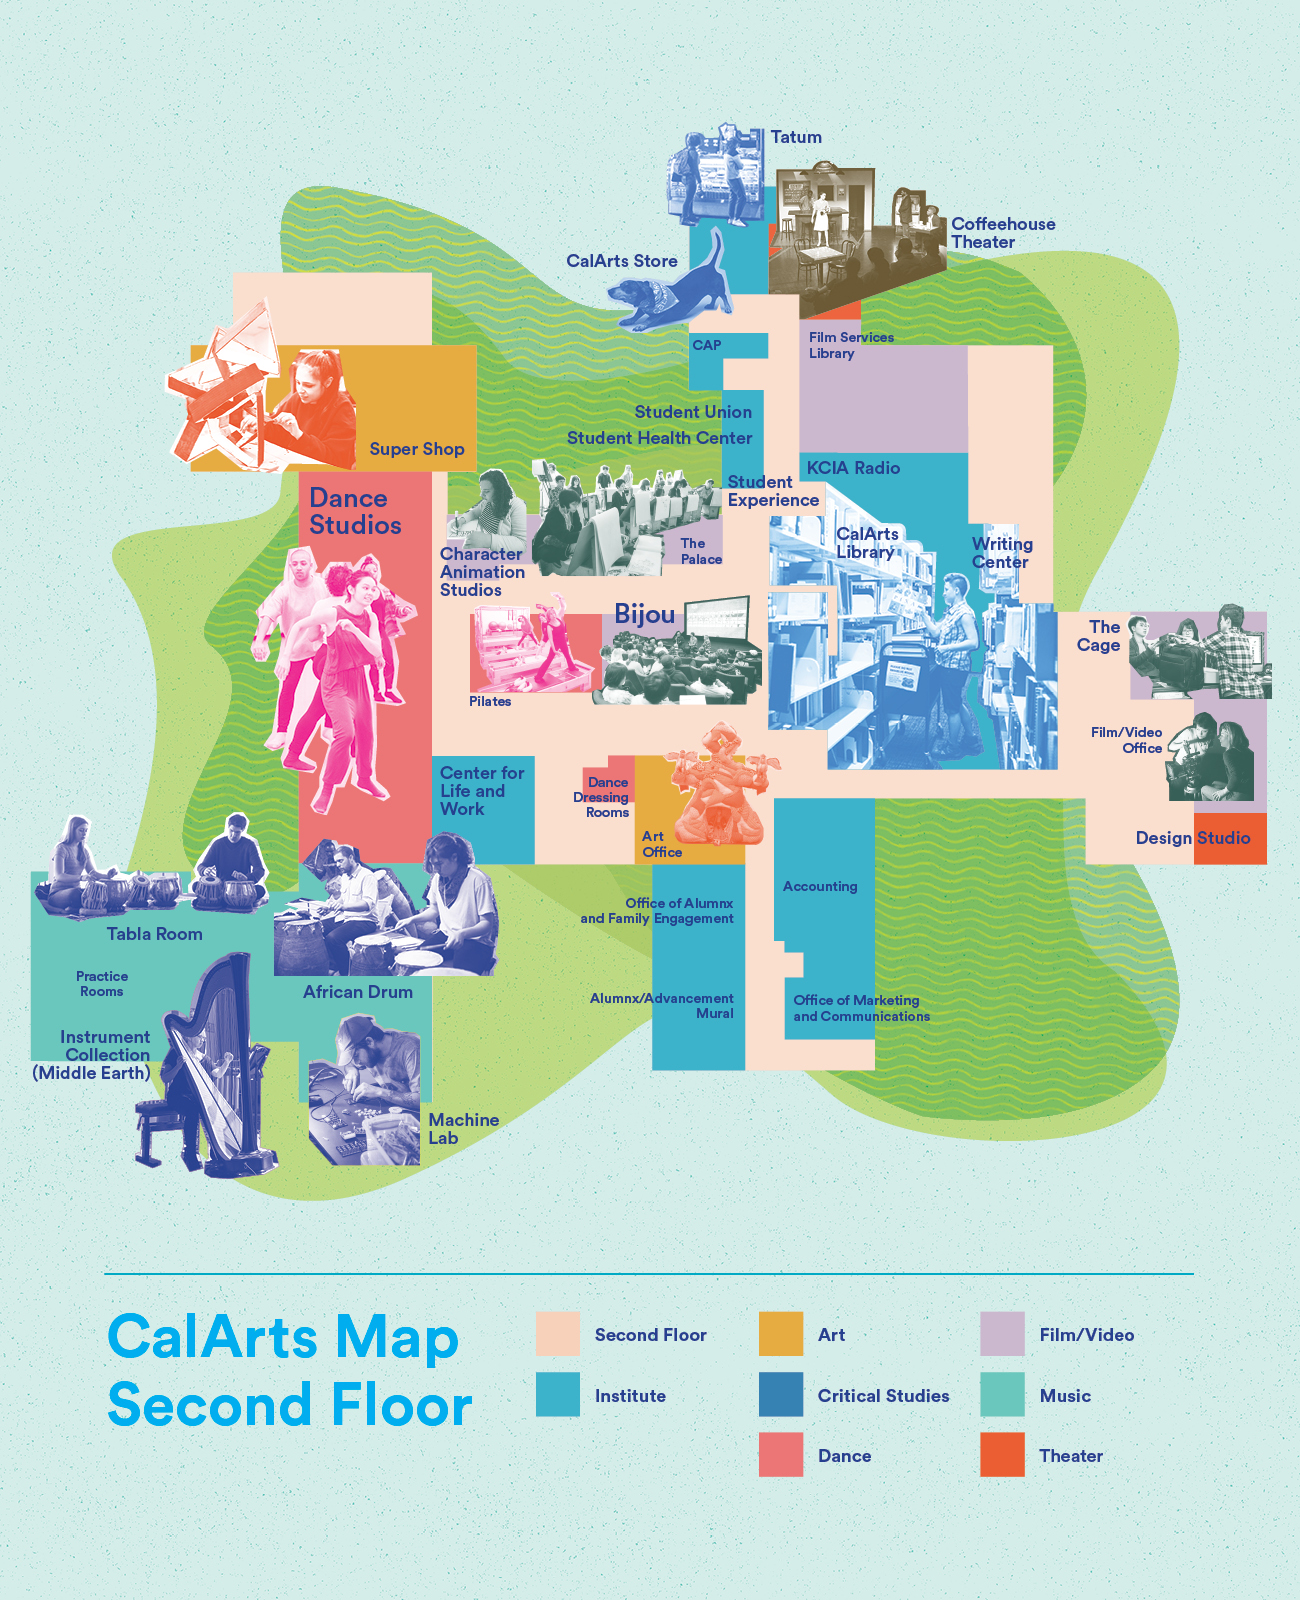 Map of the CalArts Second Floor